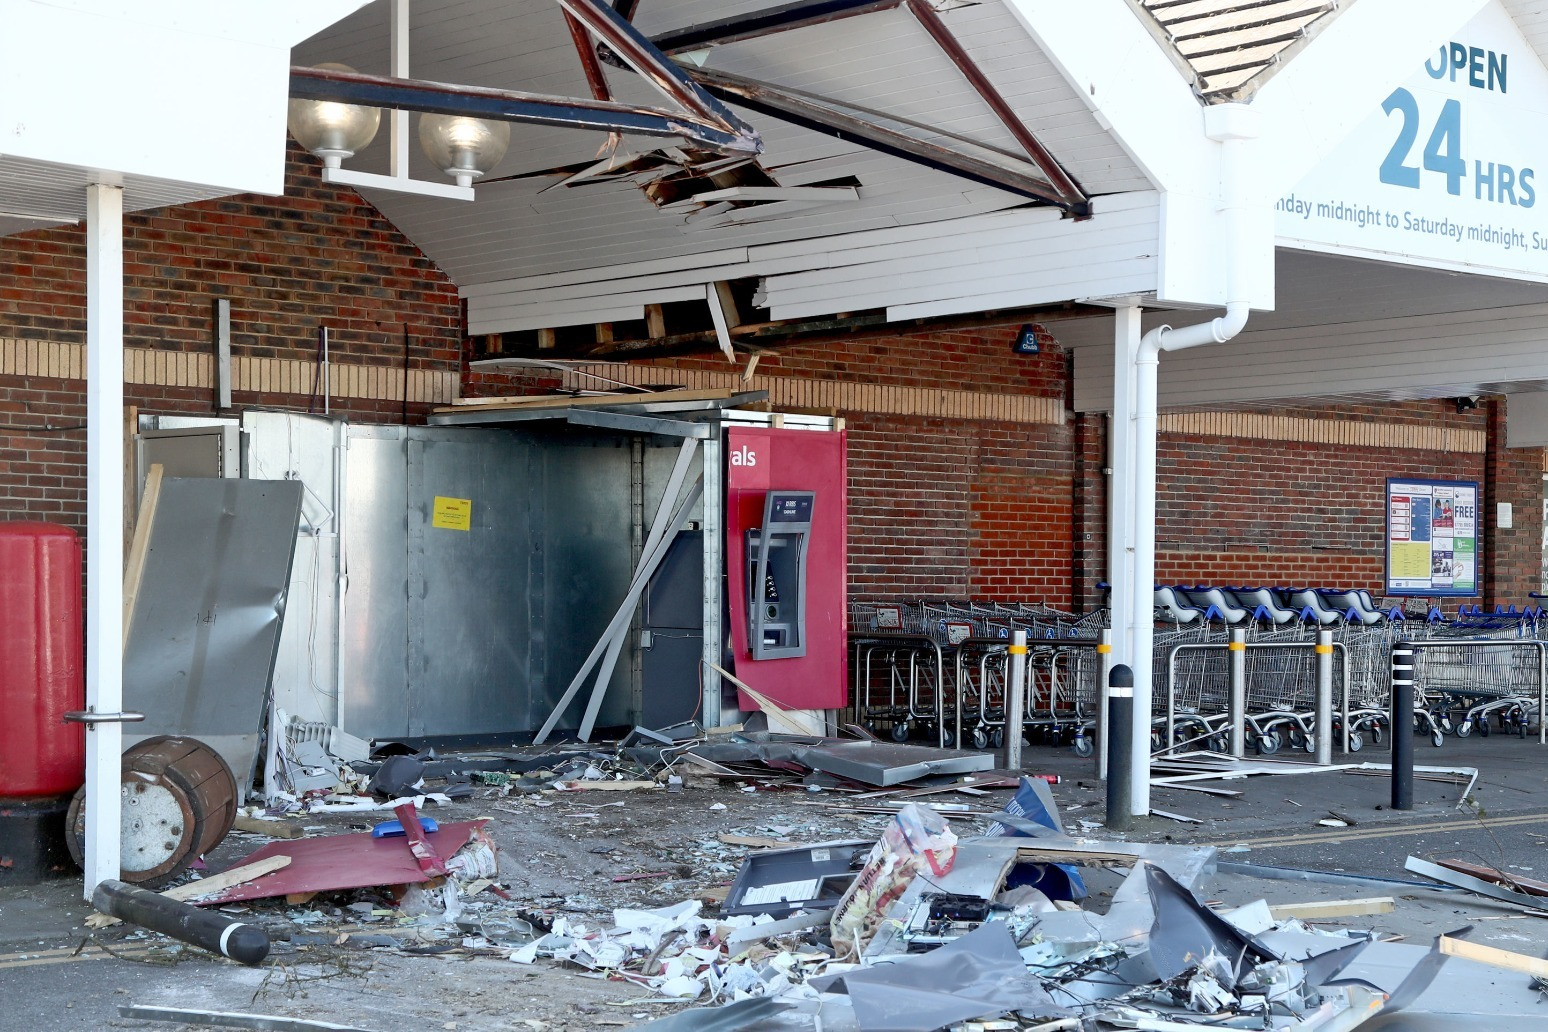 Digger used in midnight ram-raids on ATMs at Tesco store